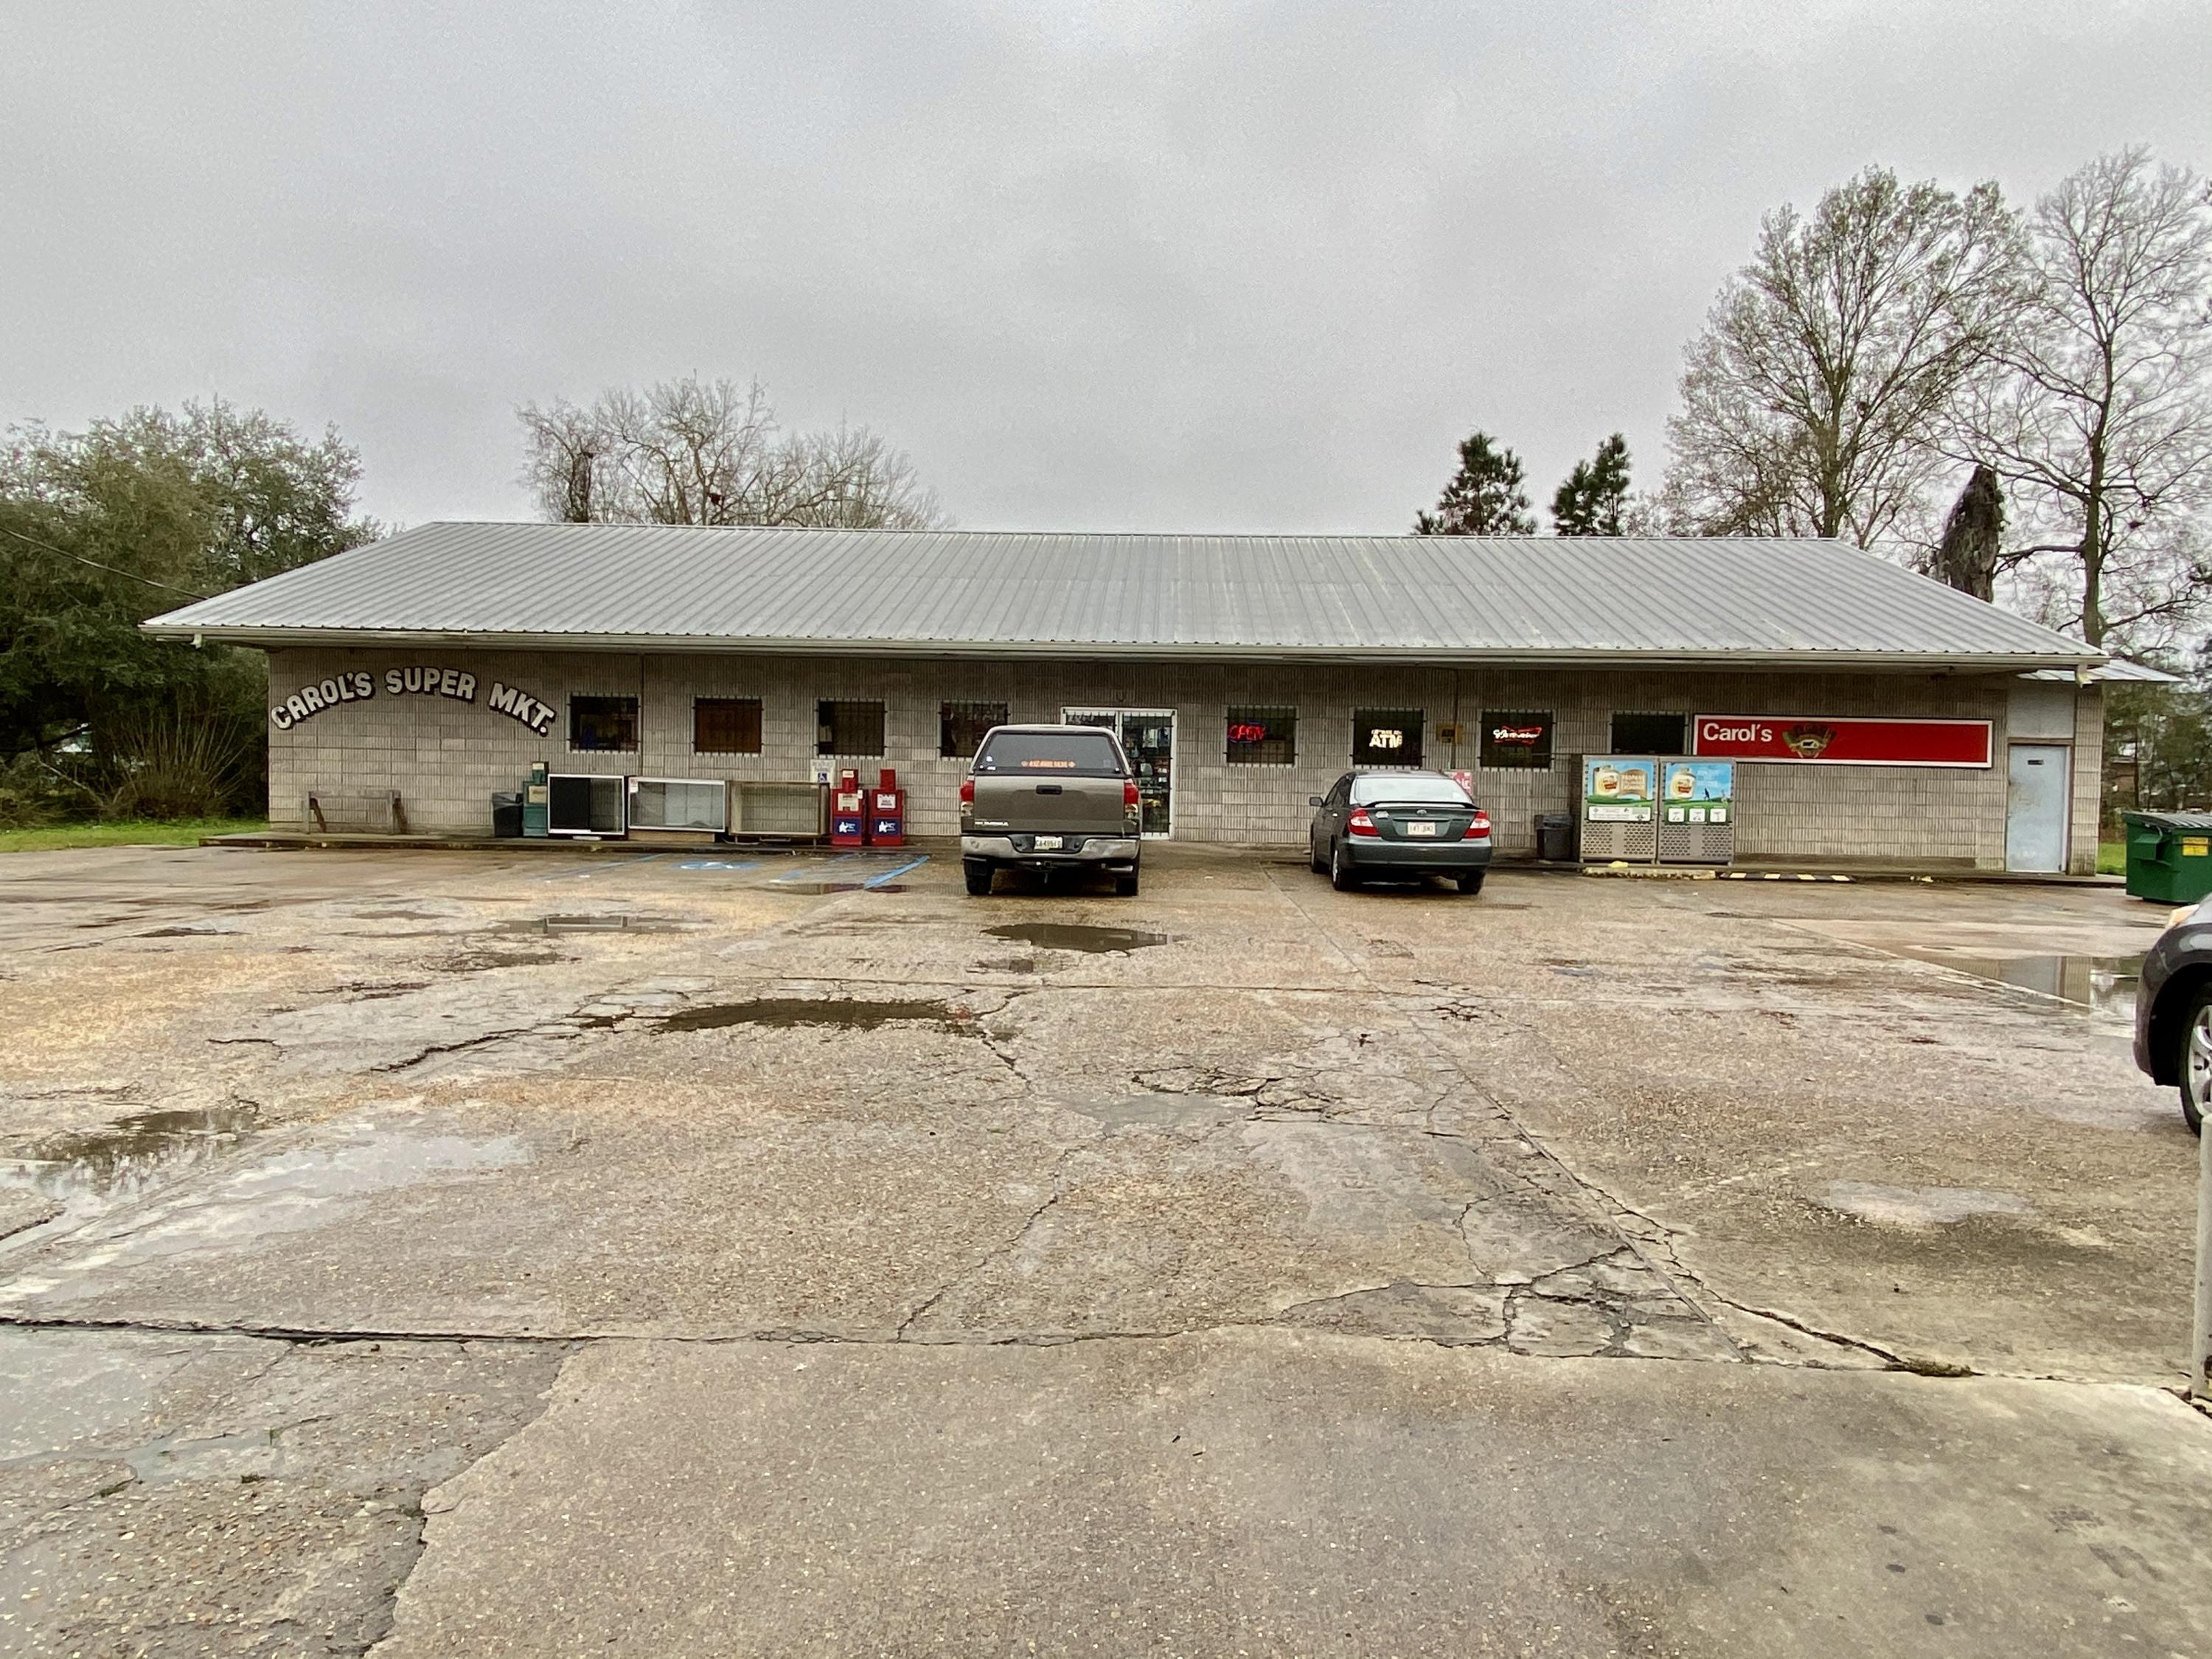 Oberlin commercial property for sale, 615 7th Ave, Oberlin LA - $475,000